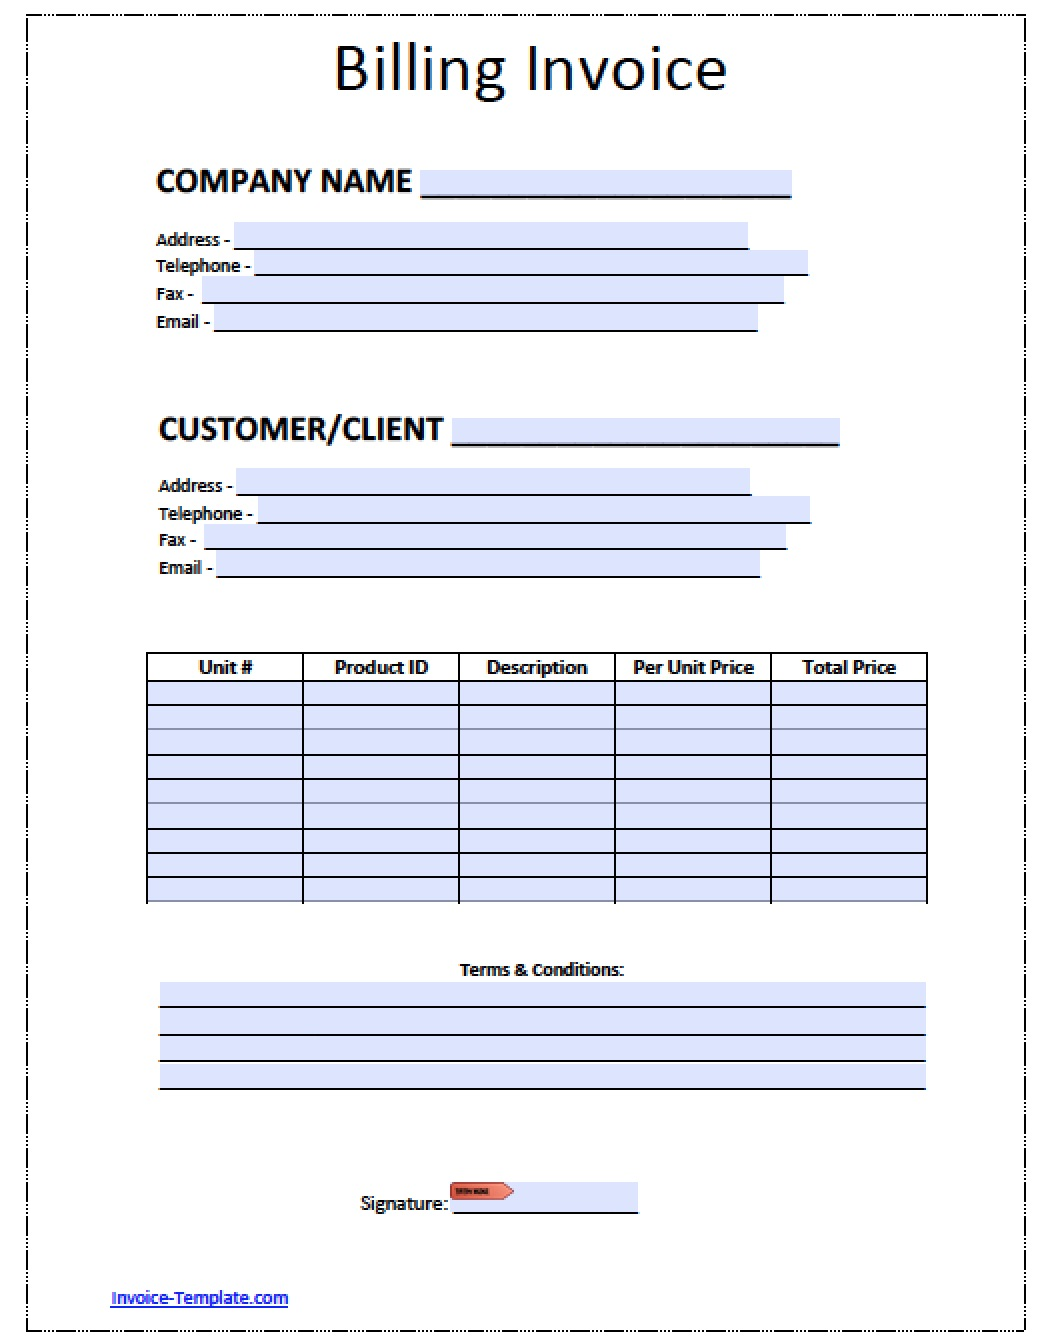 Free Business Invoice Templates Word Stunning Free Billing Invoice Template  Excel  Pdf  Word .doc